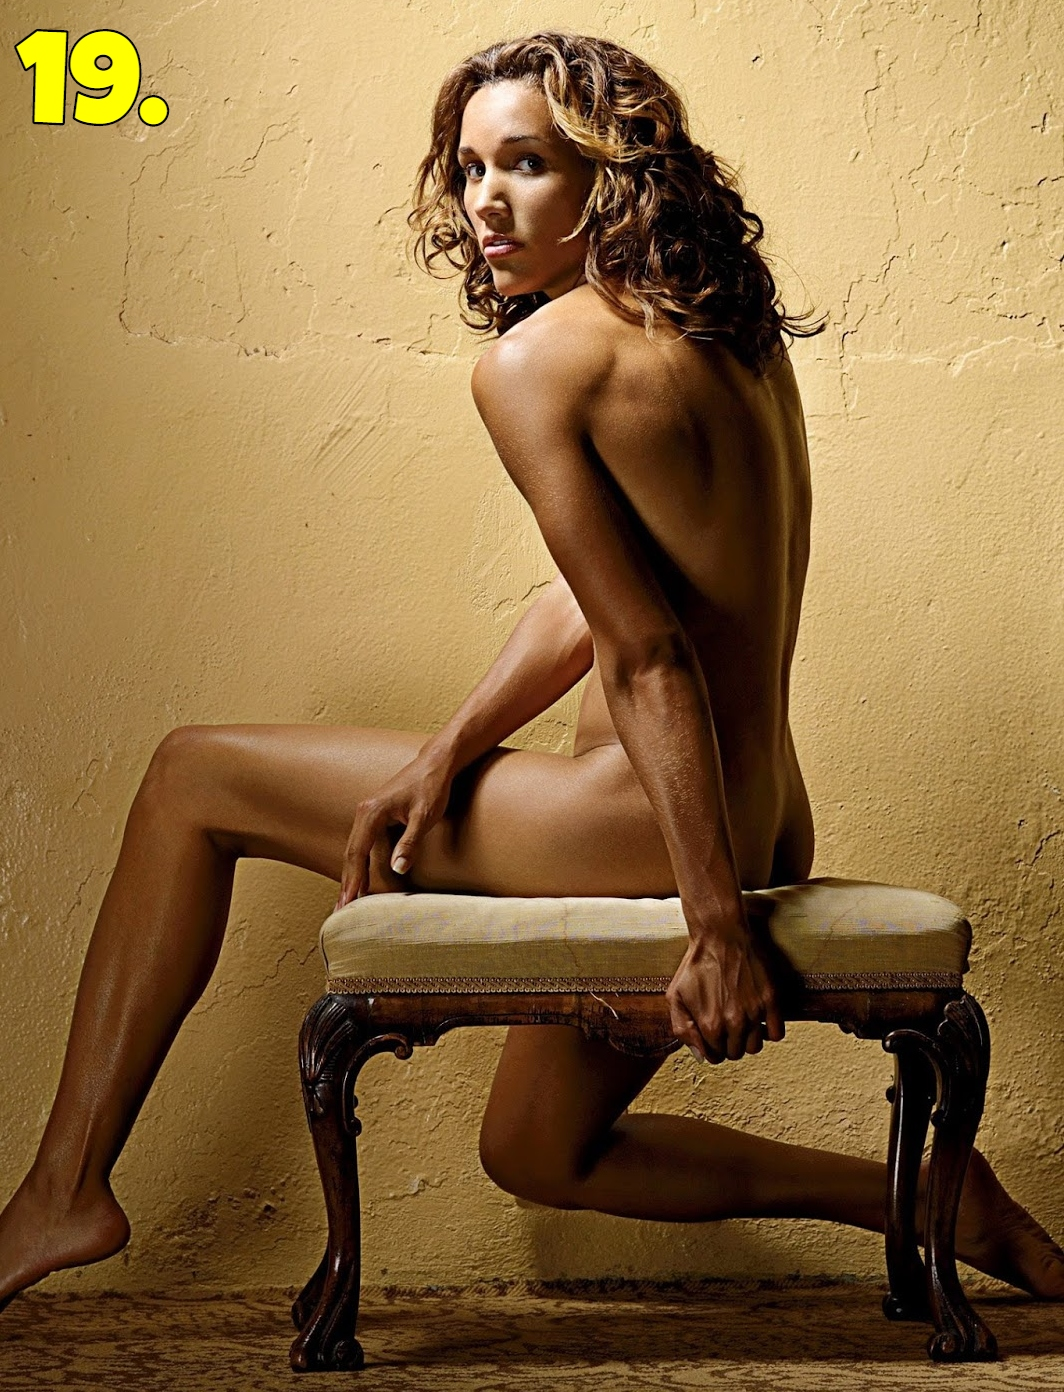 Lori Lolo Jones